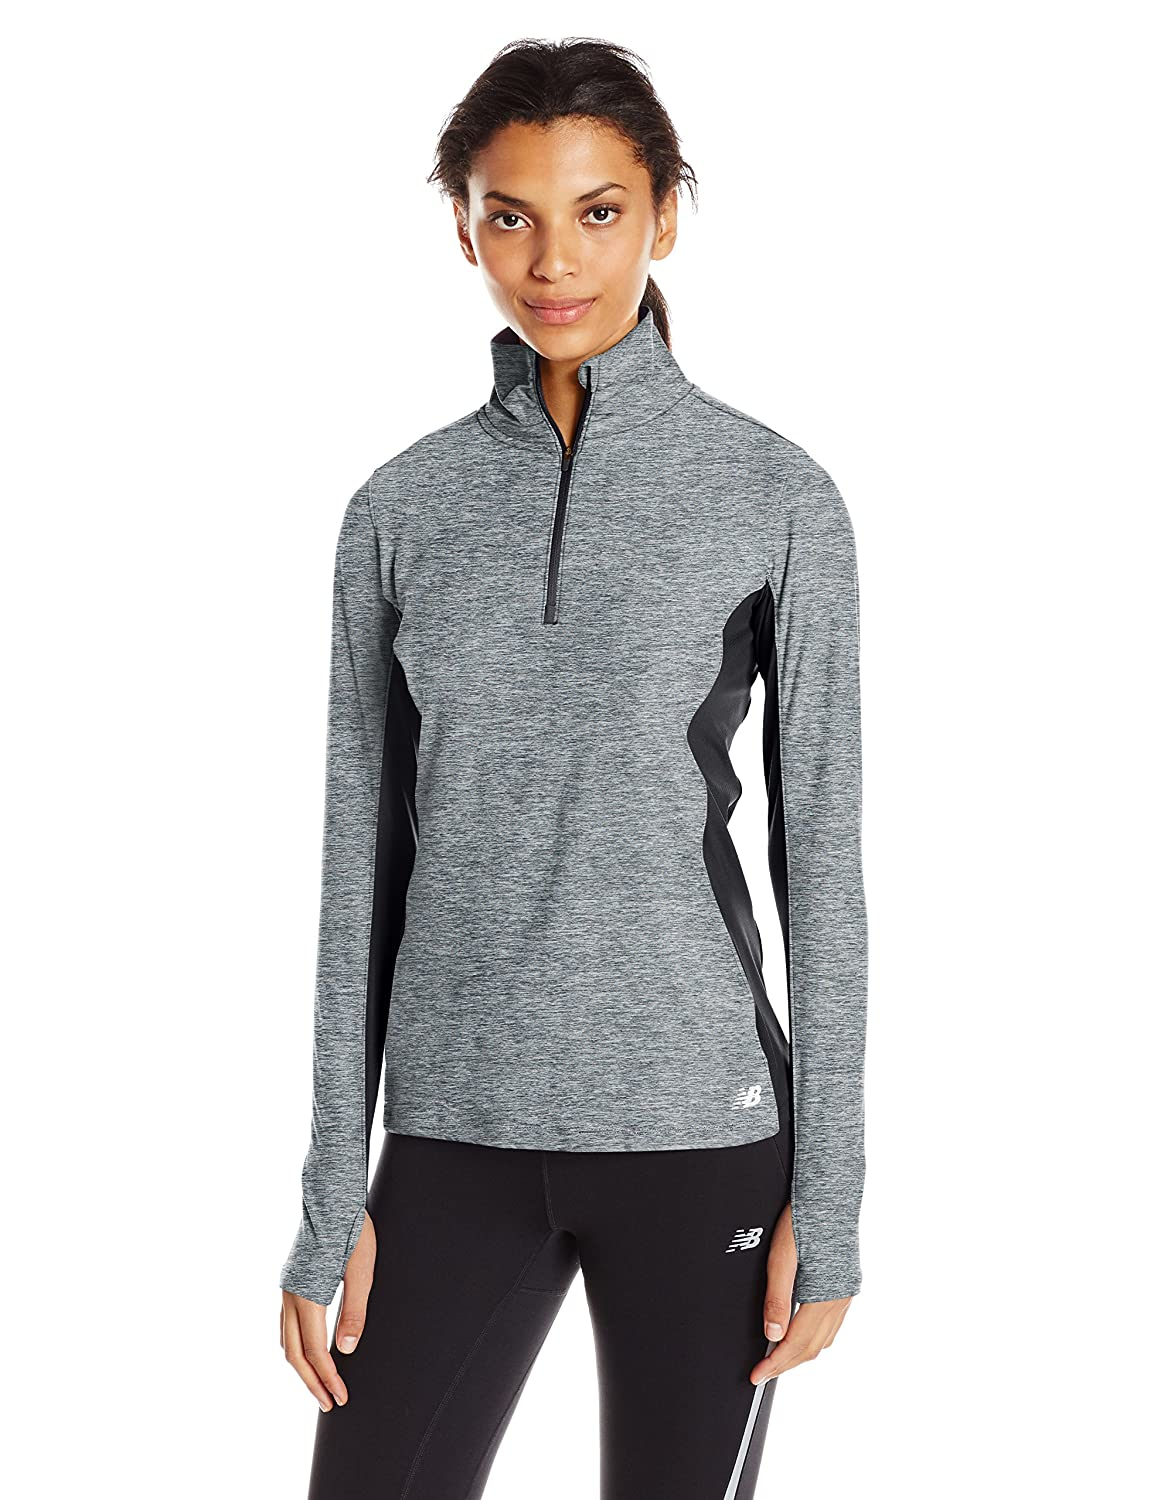 New Balance Women's Space Dye Quarter Zip Top